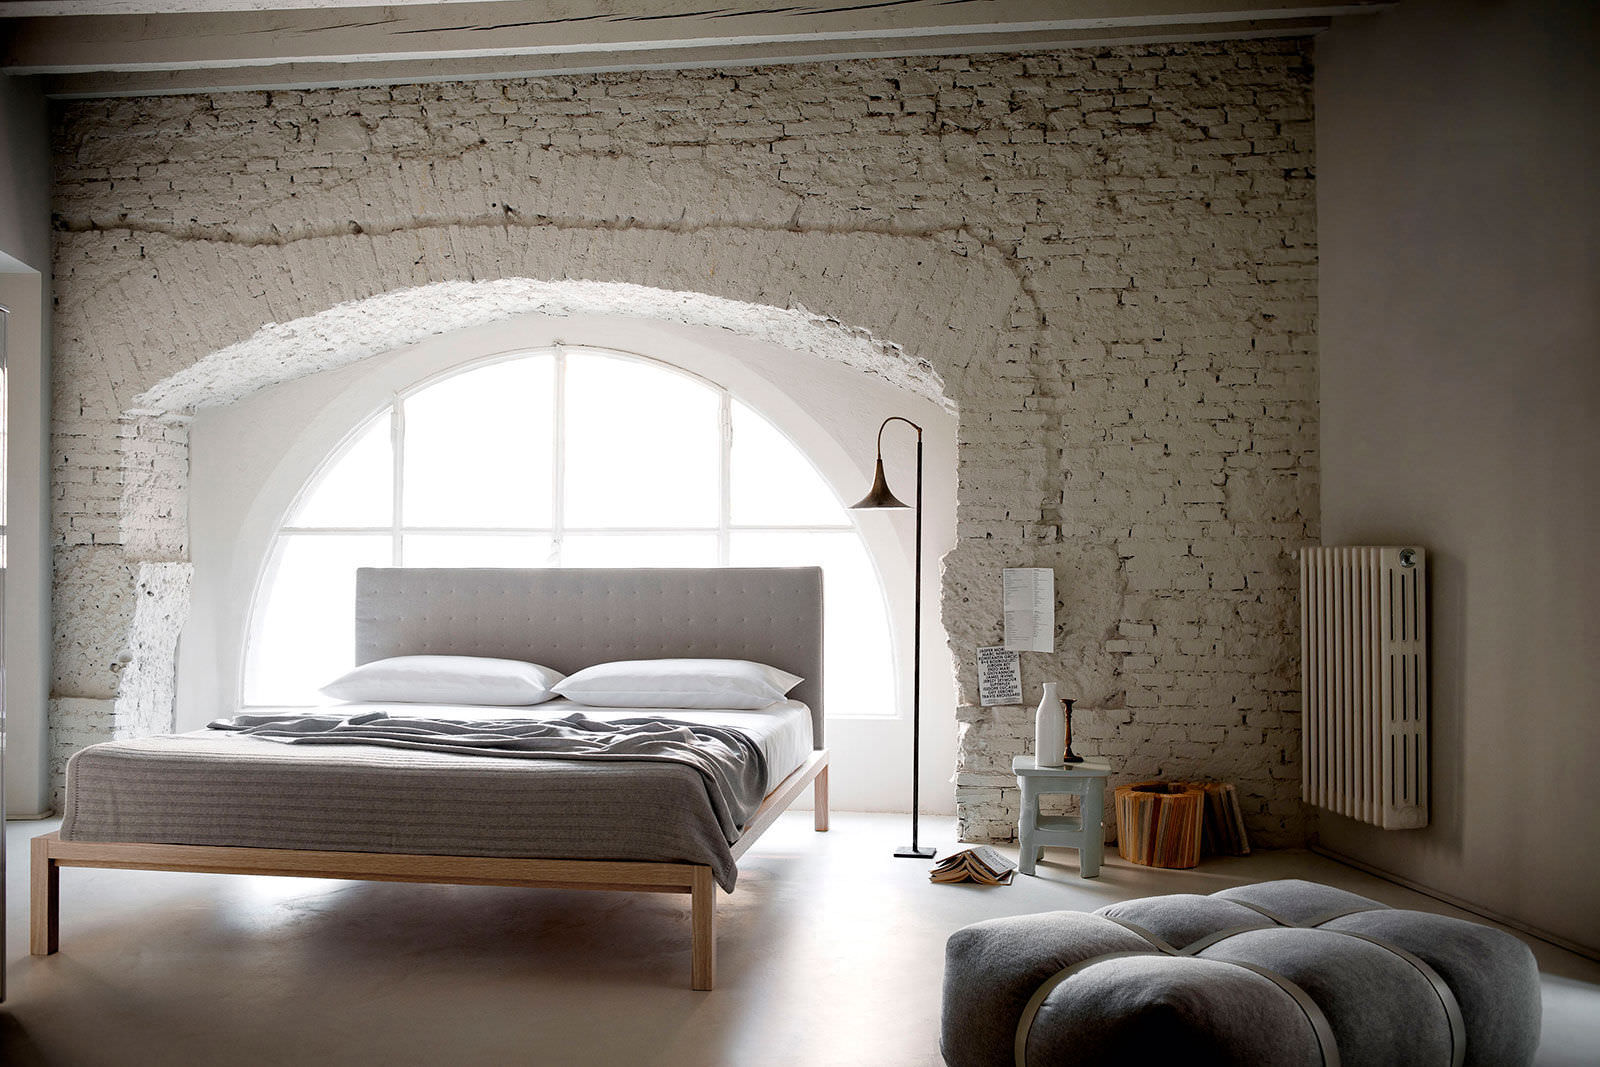 Letto standard / matrimoniale / moderno / imbottito - CARNABY by ...